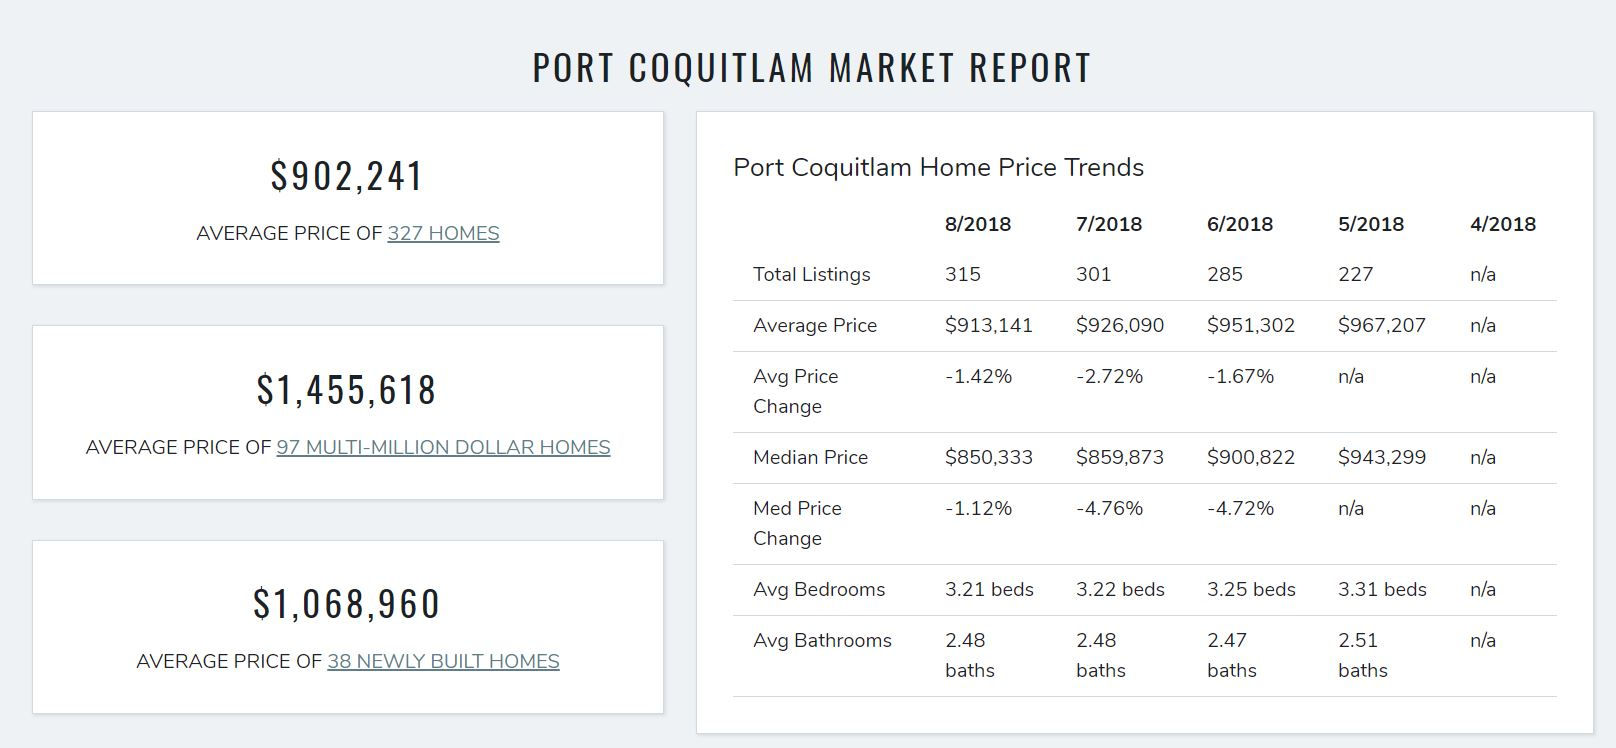 PORT COQUITLAM HOUSING MARKET REPORT